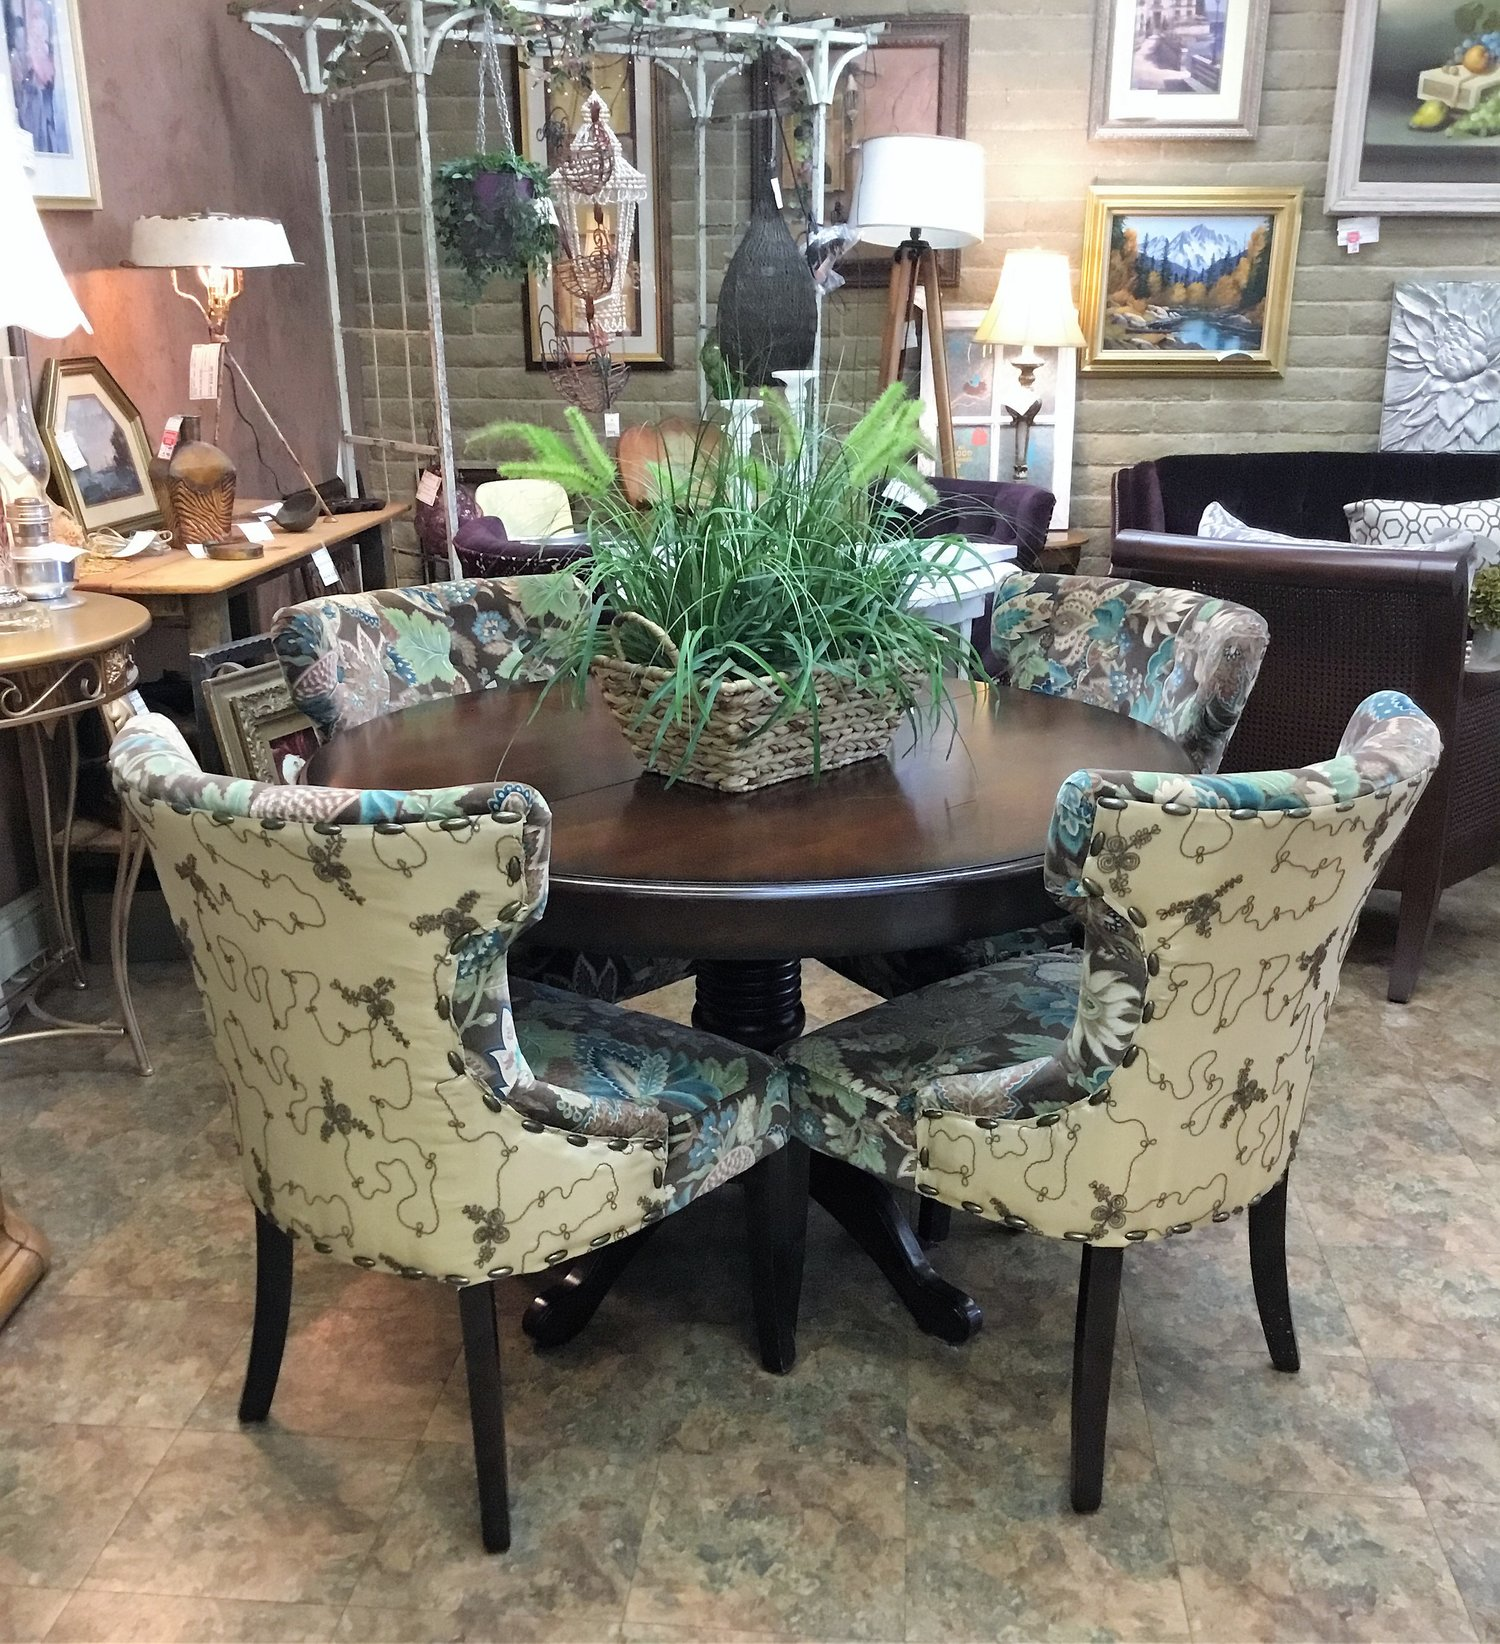 Round dining table w 4 pier 1 chairs leaf finders keepers